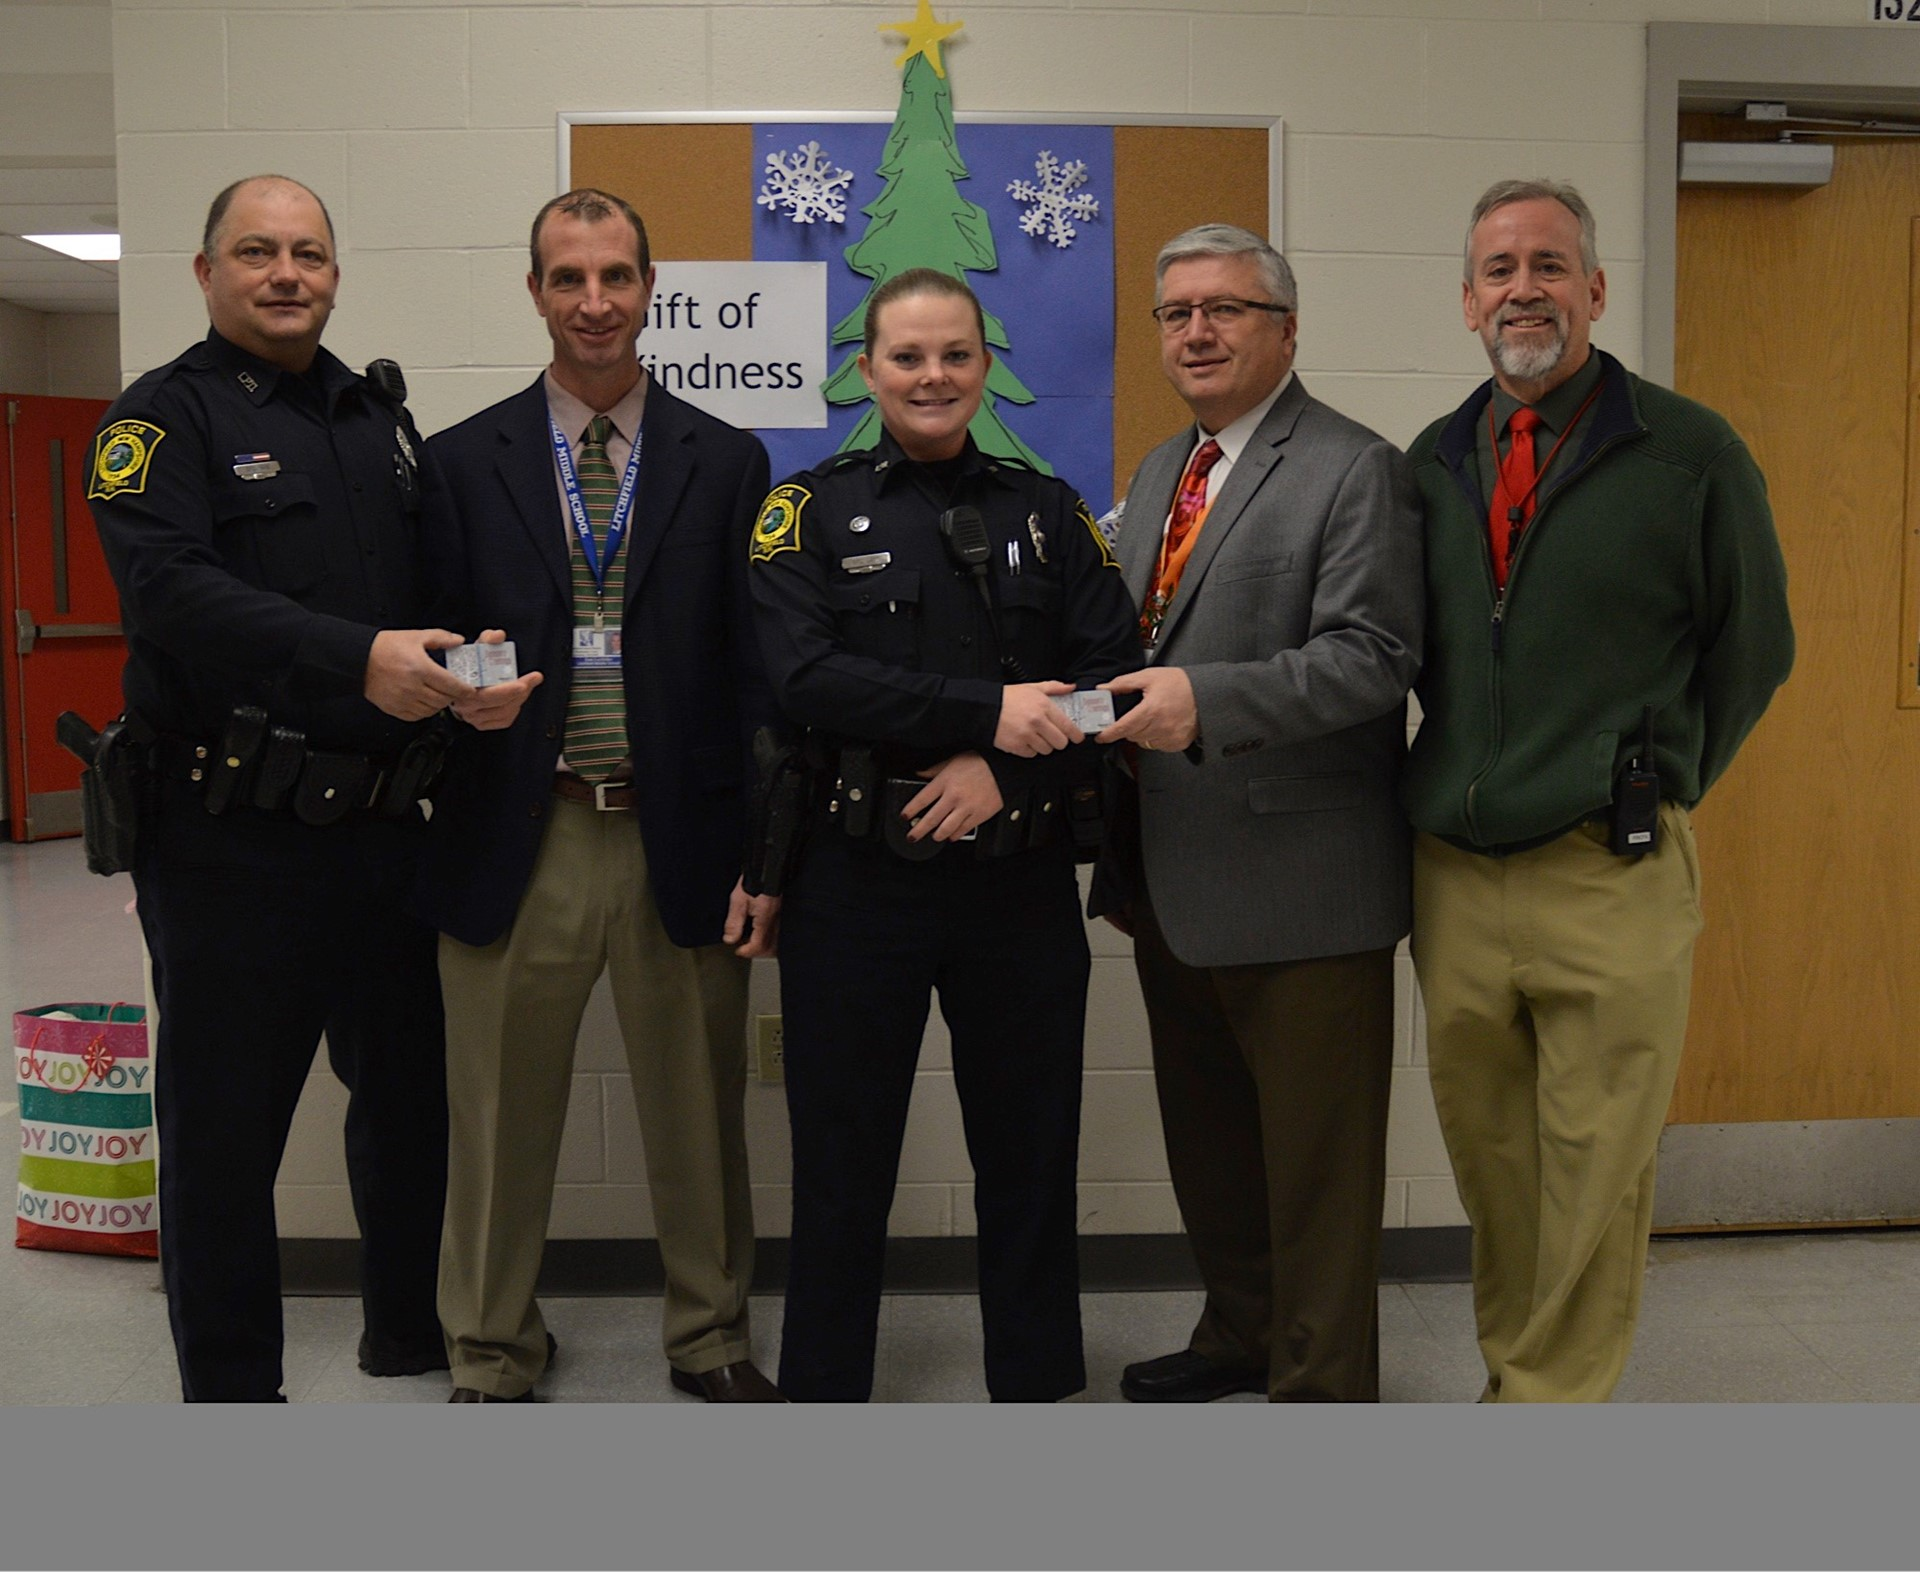 Litchfield Police with School Admin Presenting Gifts for Students